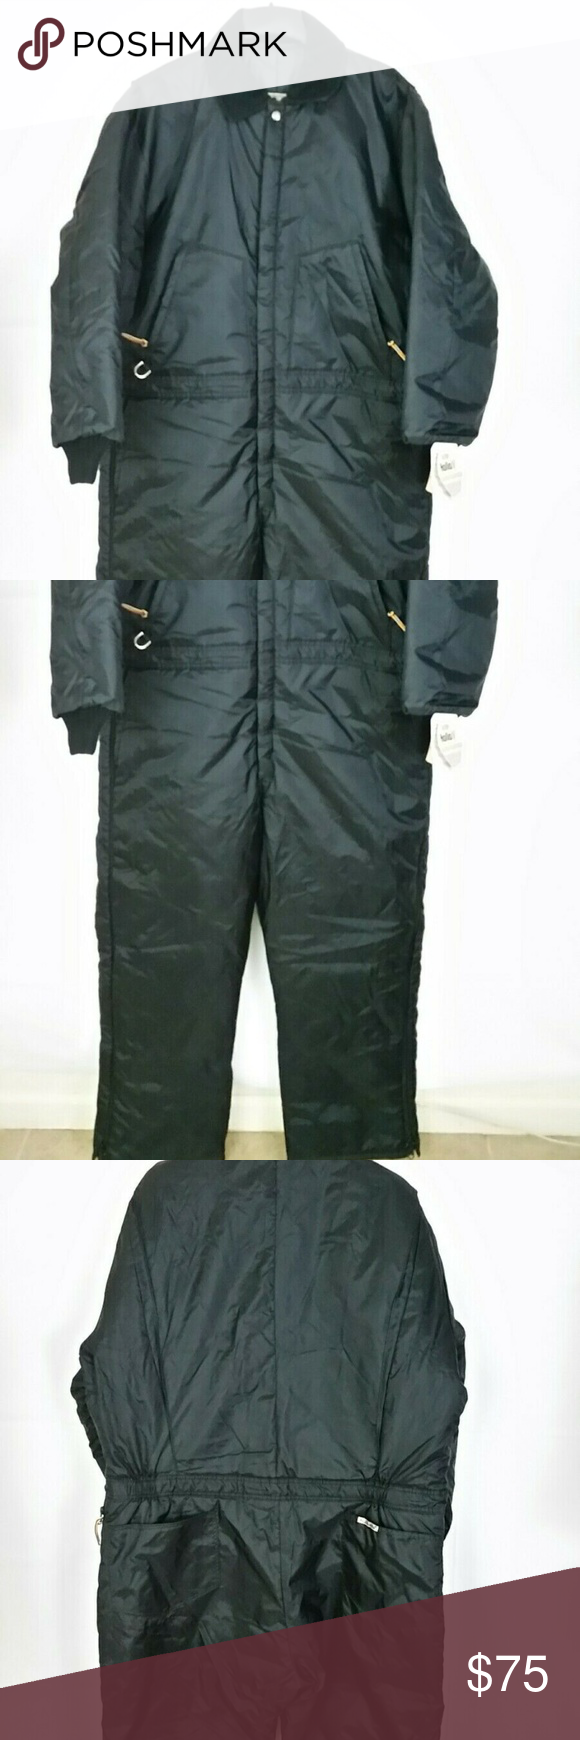 pin on my posh picks on walls insulated coveralls blizzard pruf id=51769